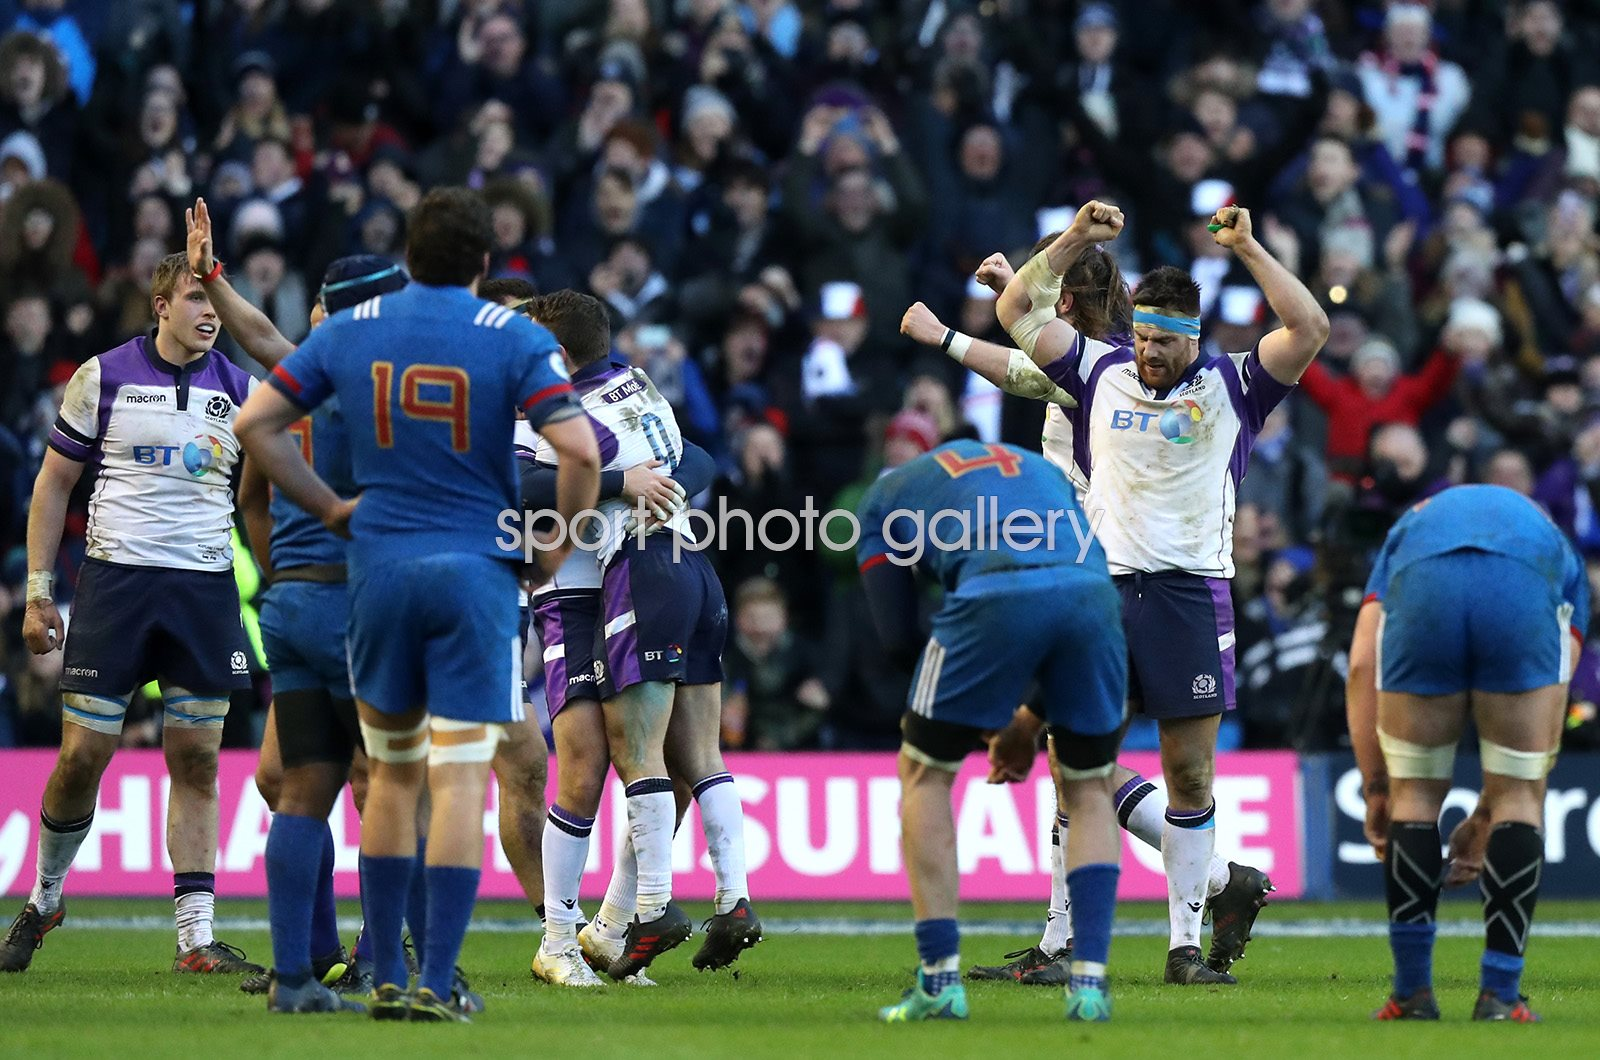 Scotland beat France Murrayfield Six Nations 2018